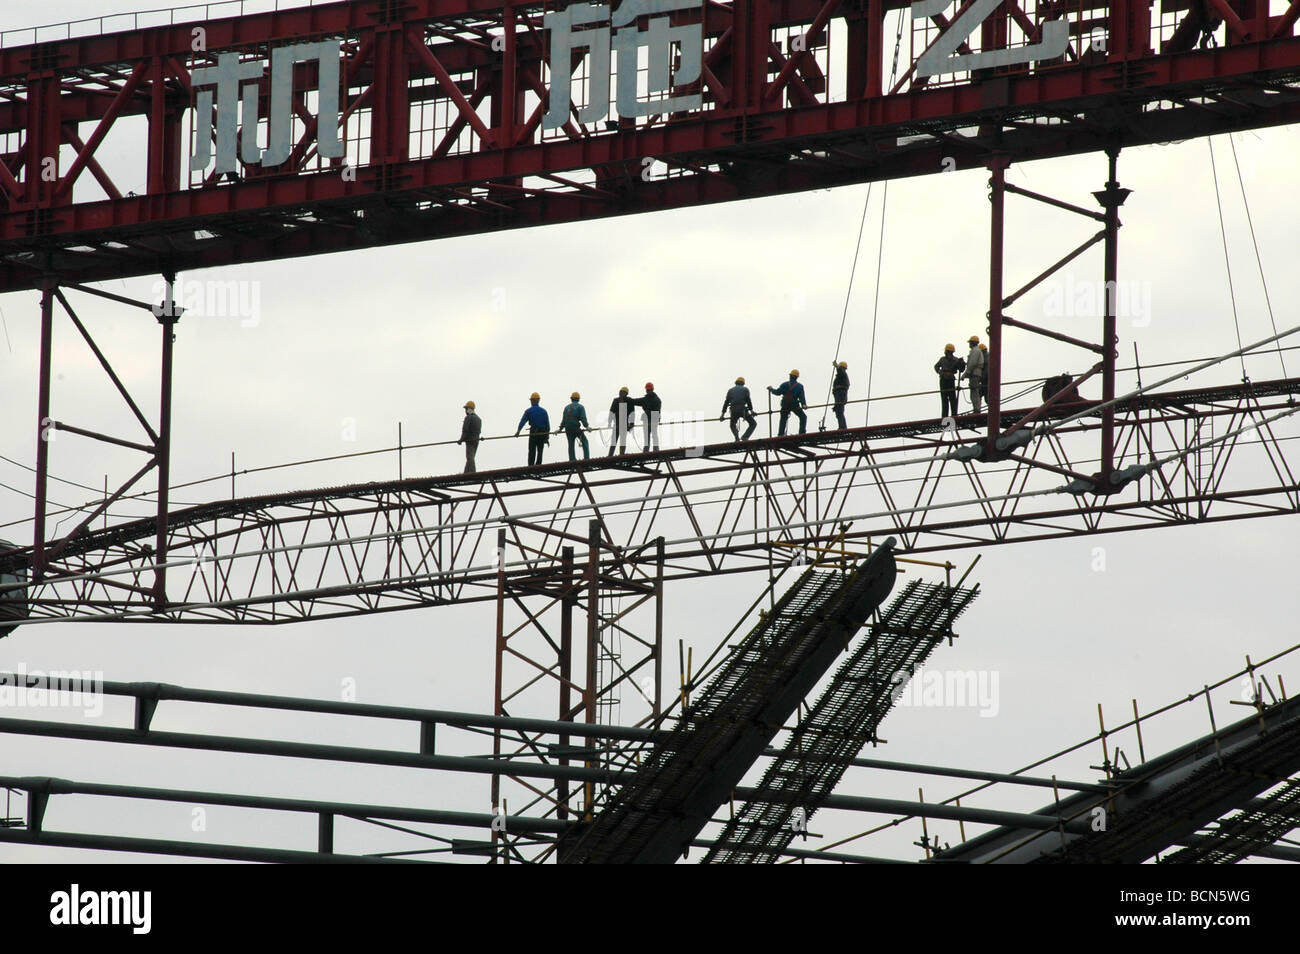 Construction workers standing on the scaffold, Shanghai, China - Stock Image